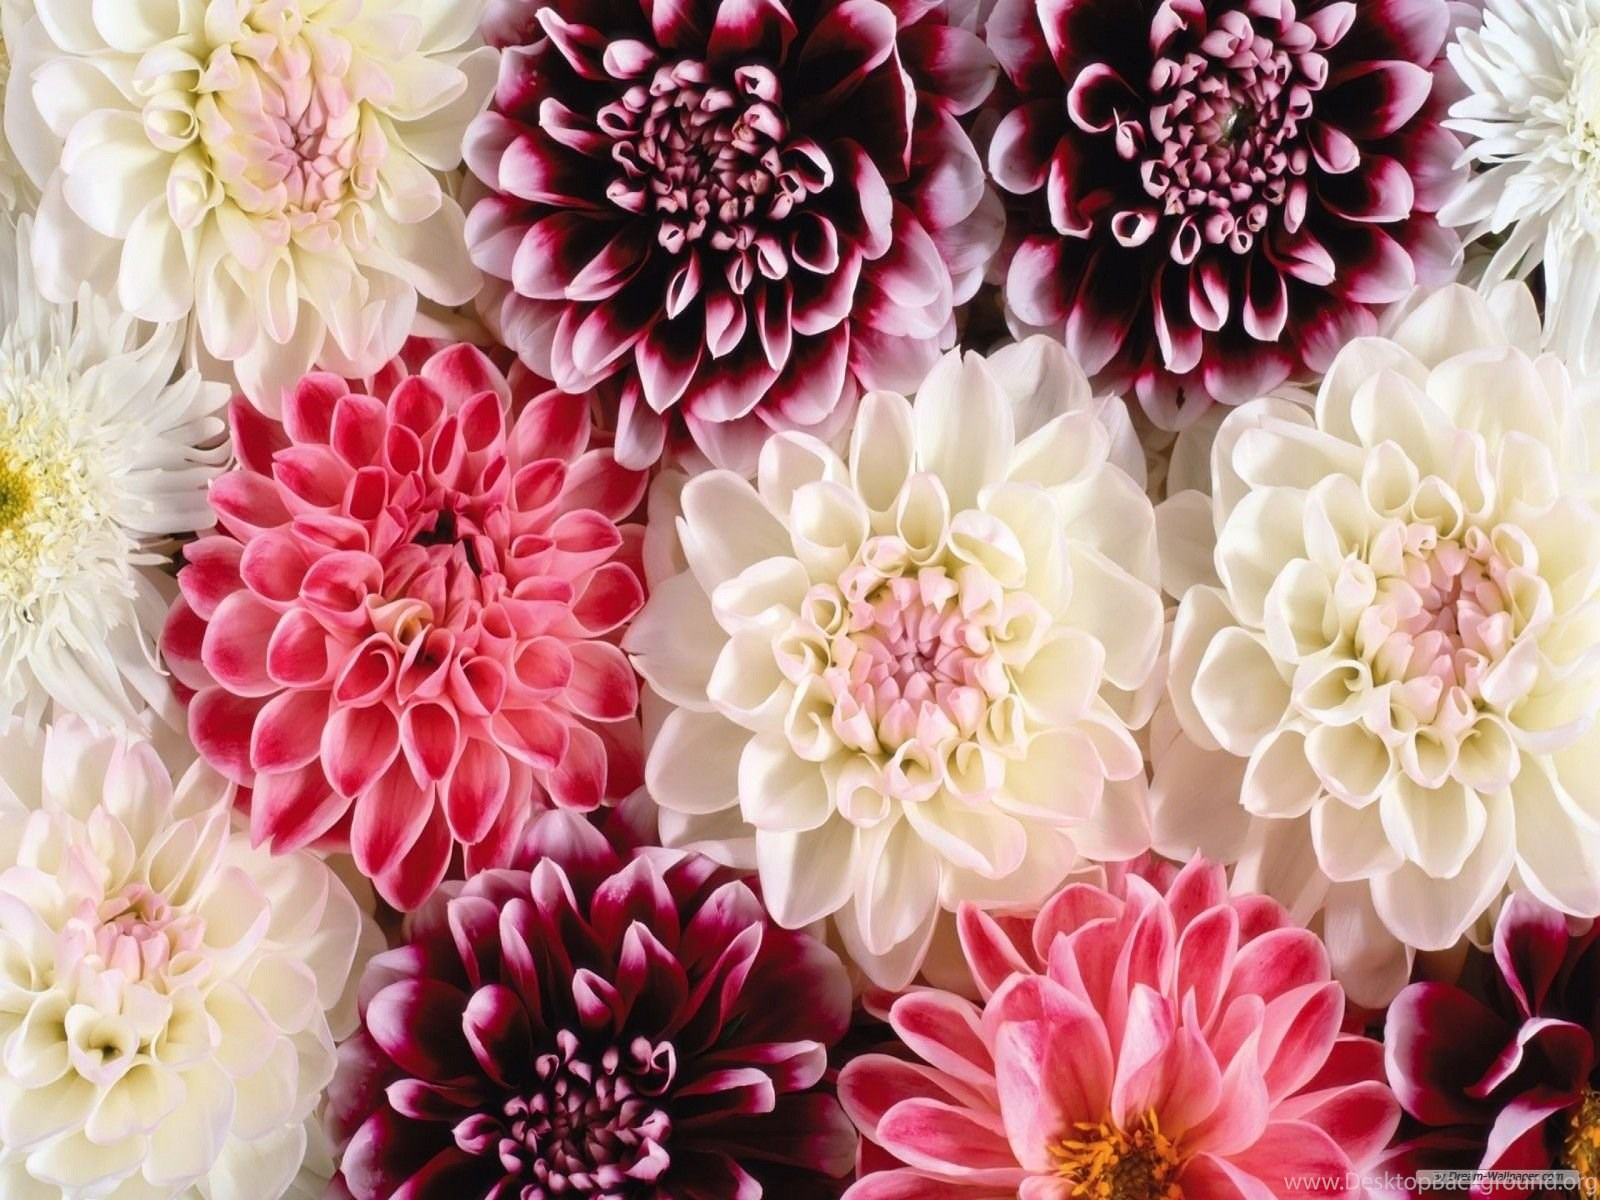 Vintage Flower Tumblr Quotes Background » Outdoors ...  Vintage Flower Wallpaper Tumblr Quotes